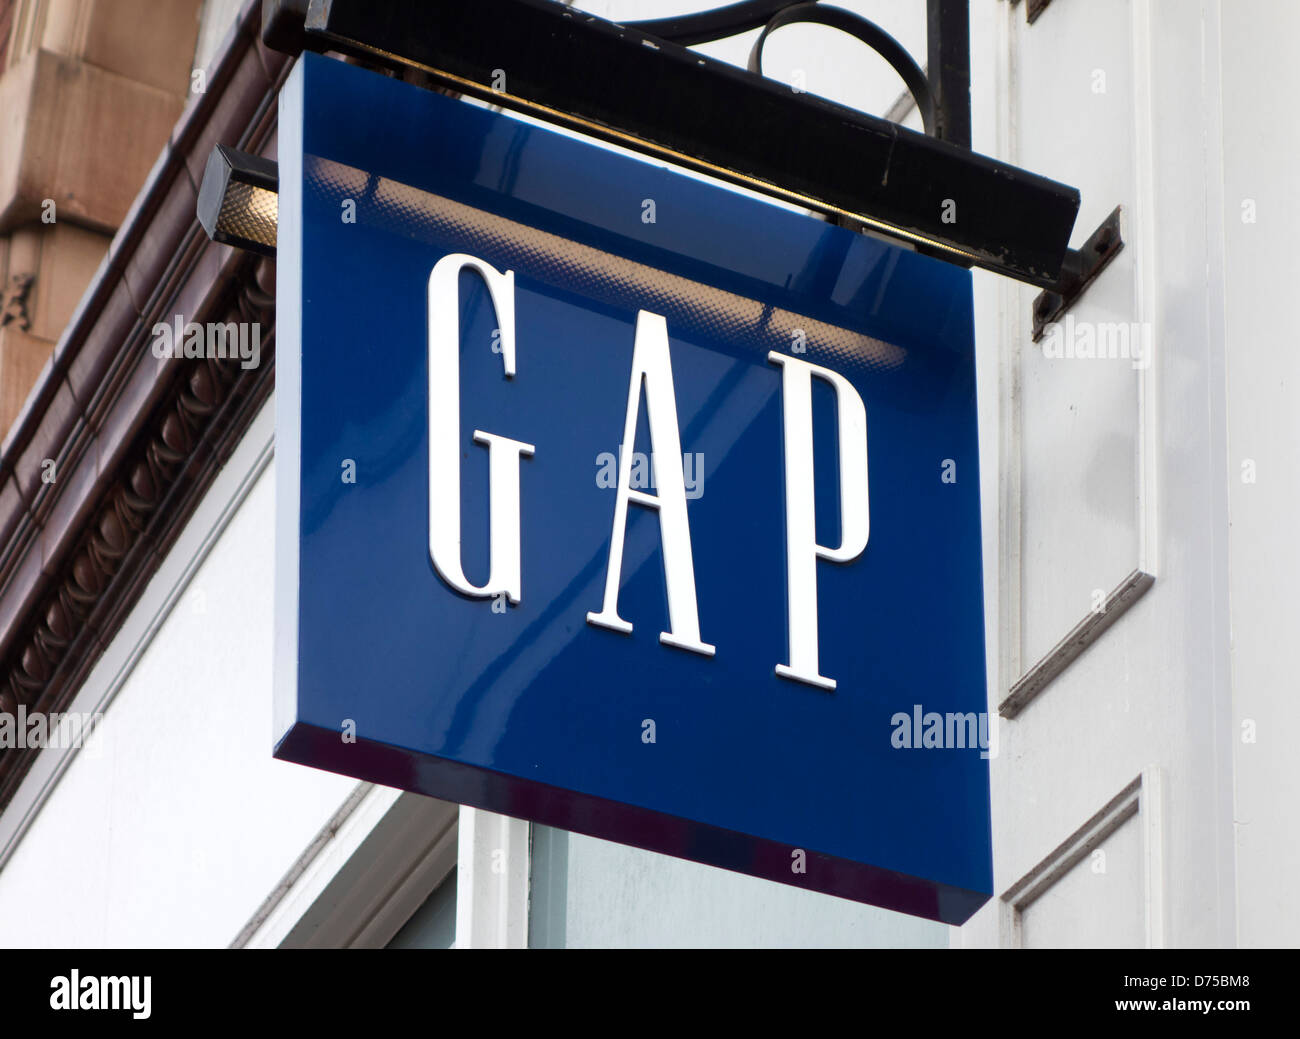 GAP store on Briggate, Leeds, West Yorkshire, UK - Stock Image